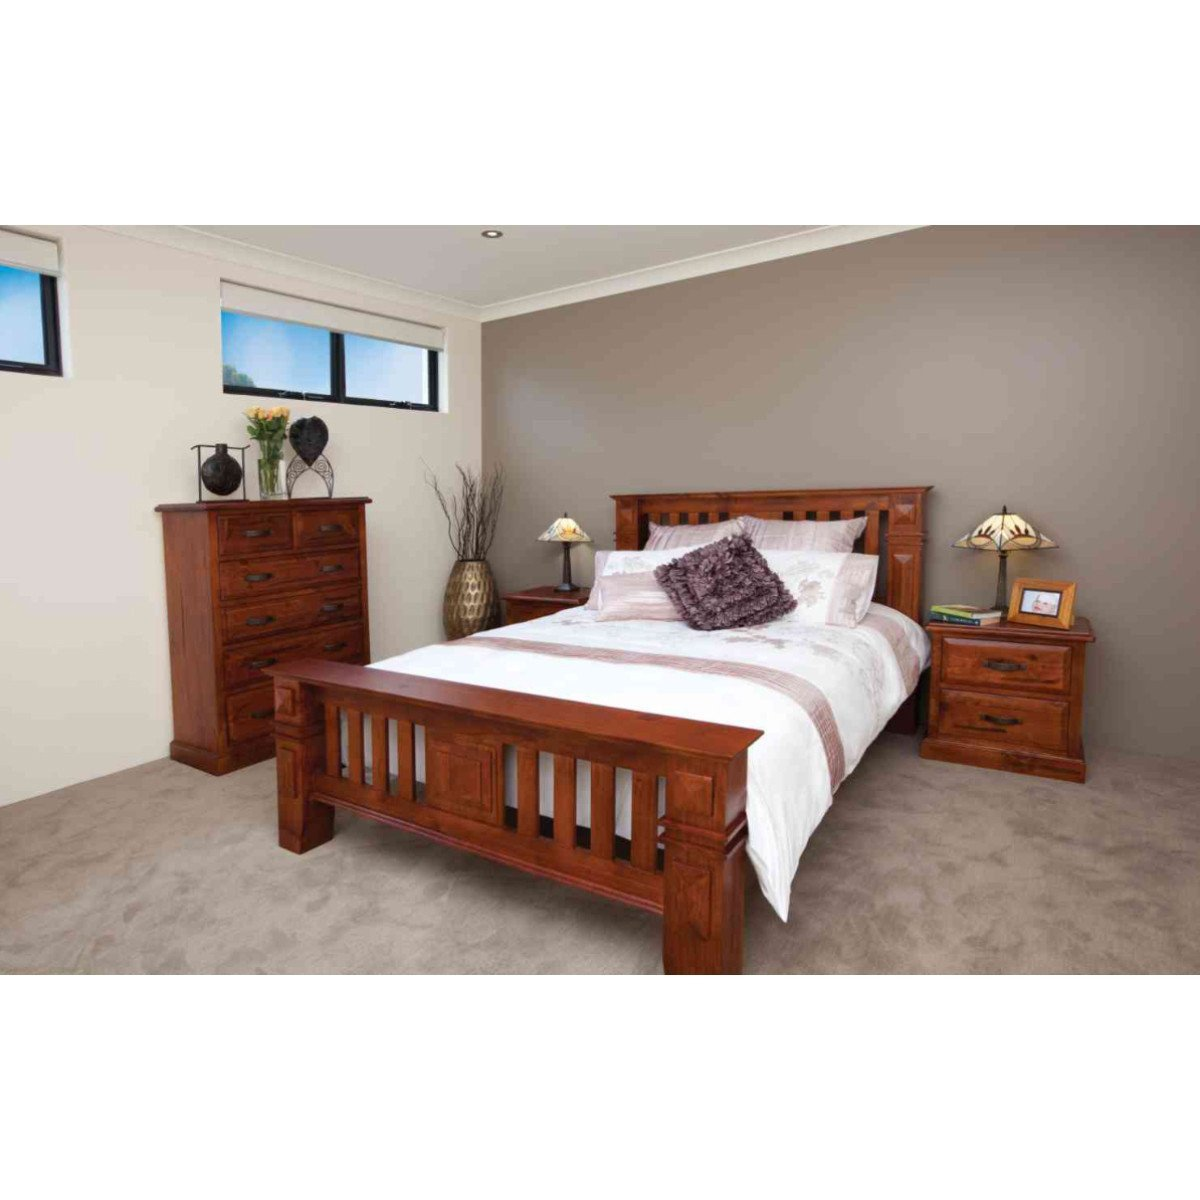 Cheap Bedroom Suites: Oxford Bed Suite With FREE Queen Innerspring Mattress